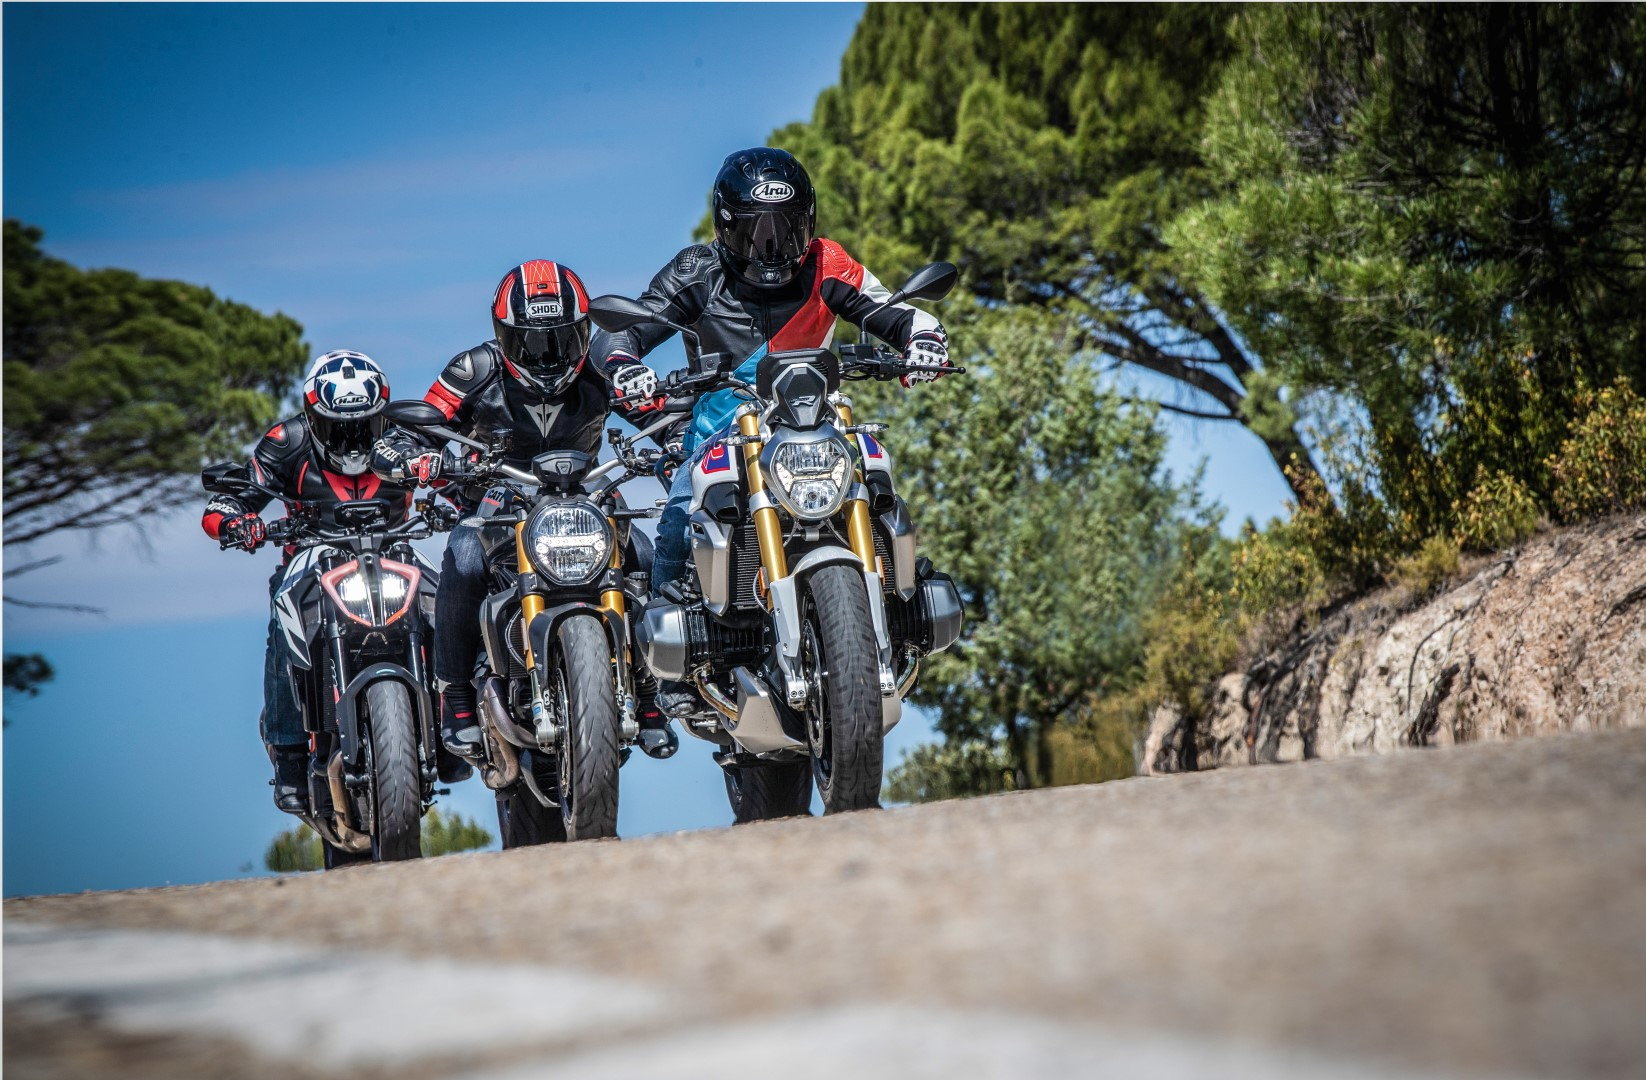 Comparativa Supernaked Grandes Twin: BMW R 1250 R, Ducati Monster 1200 S, KTM 1290 Super Duke R